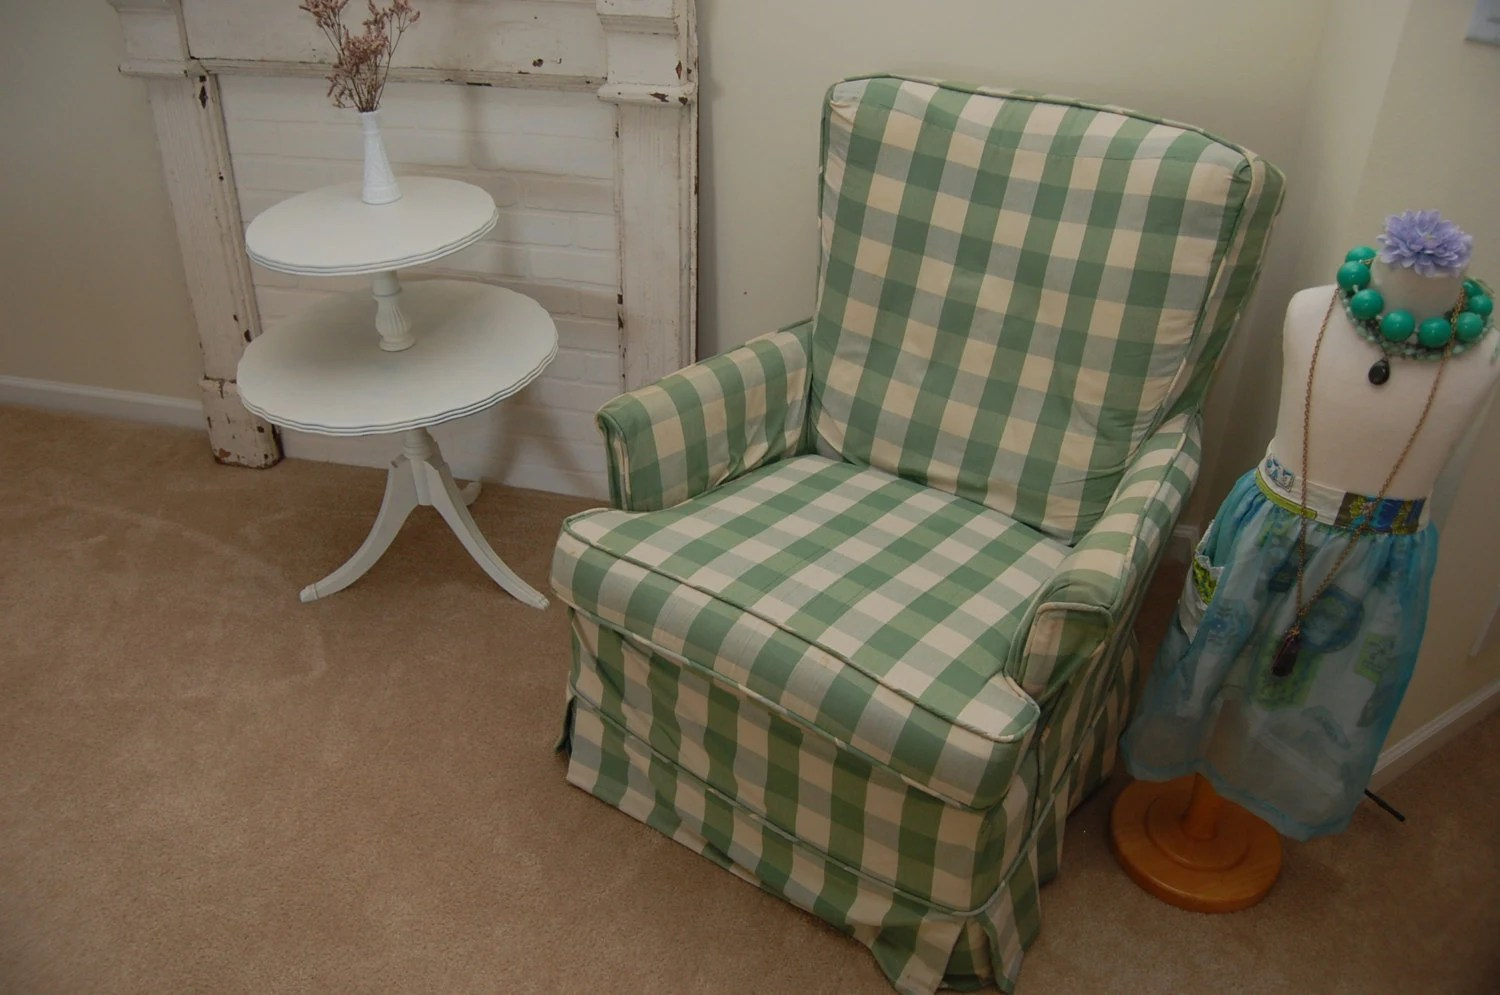 arm chair rocker walgreens shower items similar to vintage rocking swivel checkered slipcover shabby chic cottage style ...